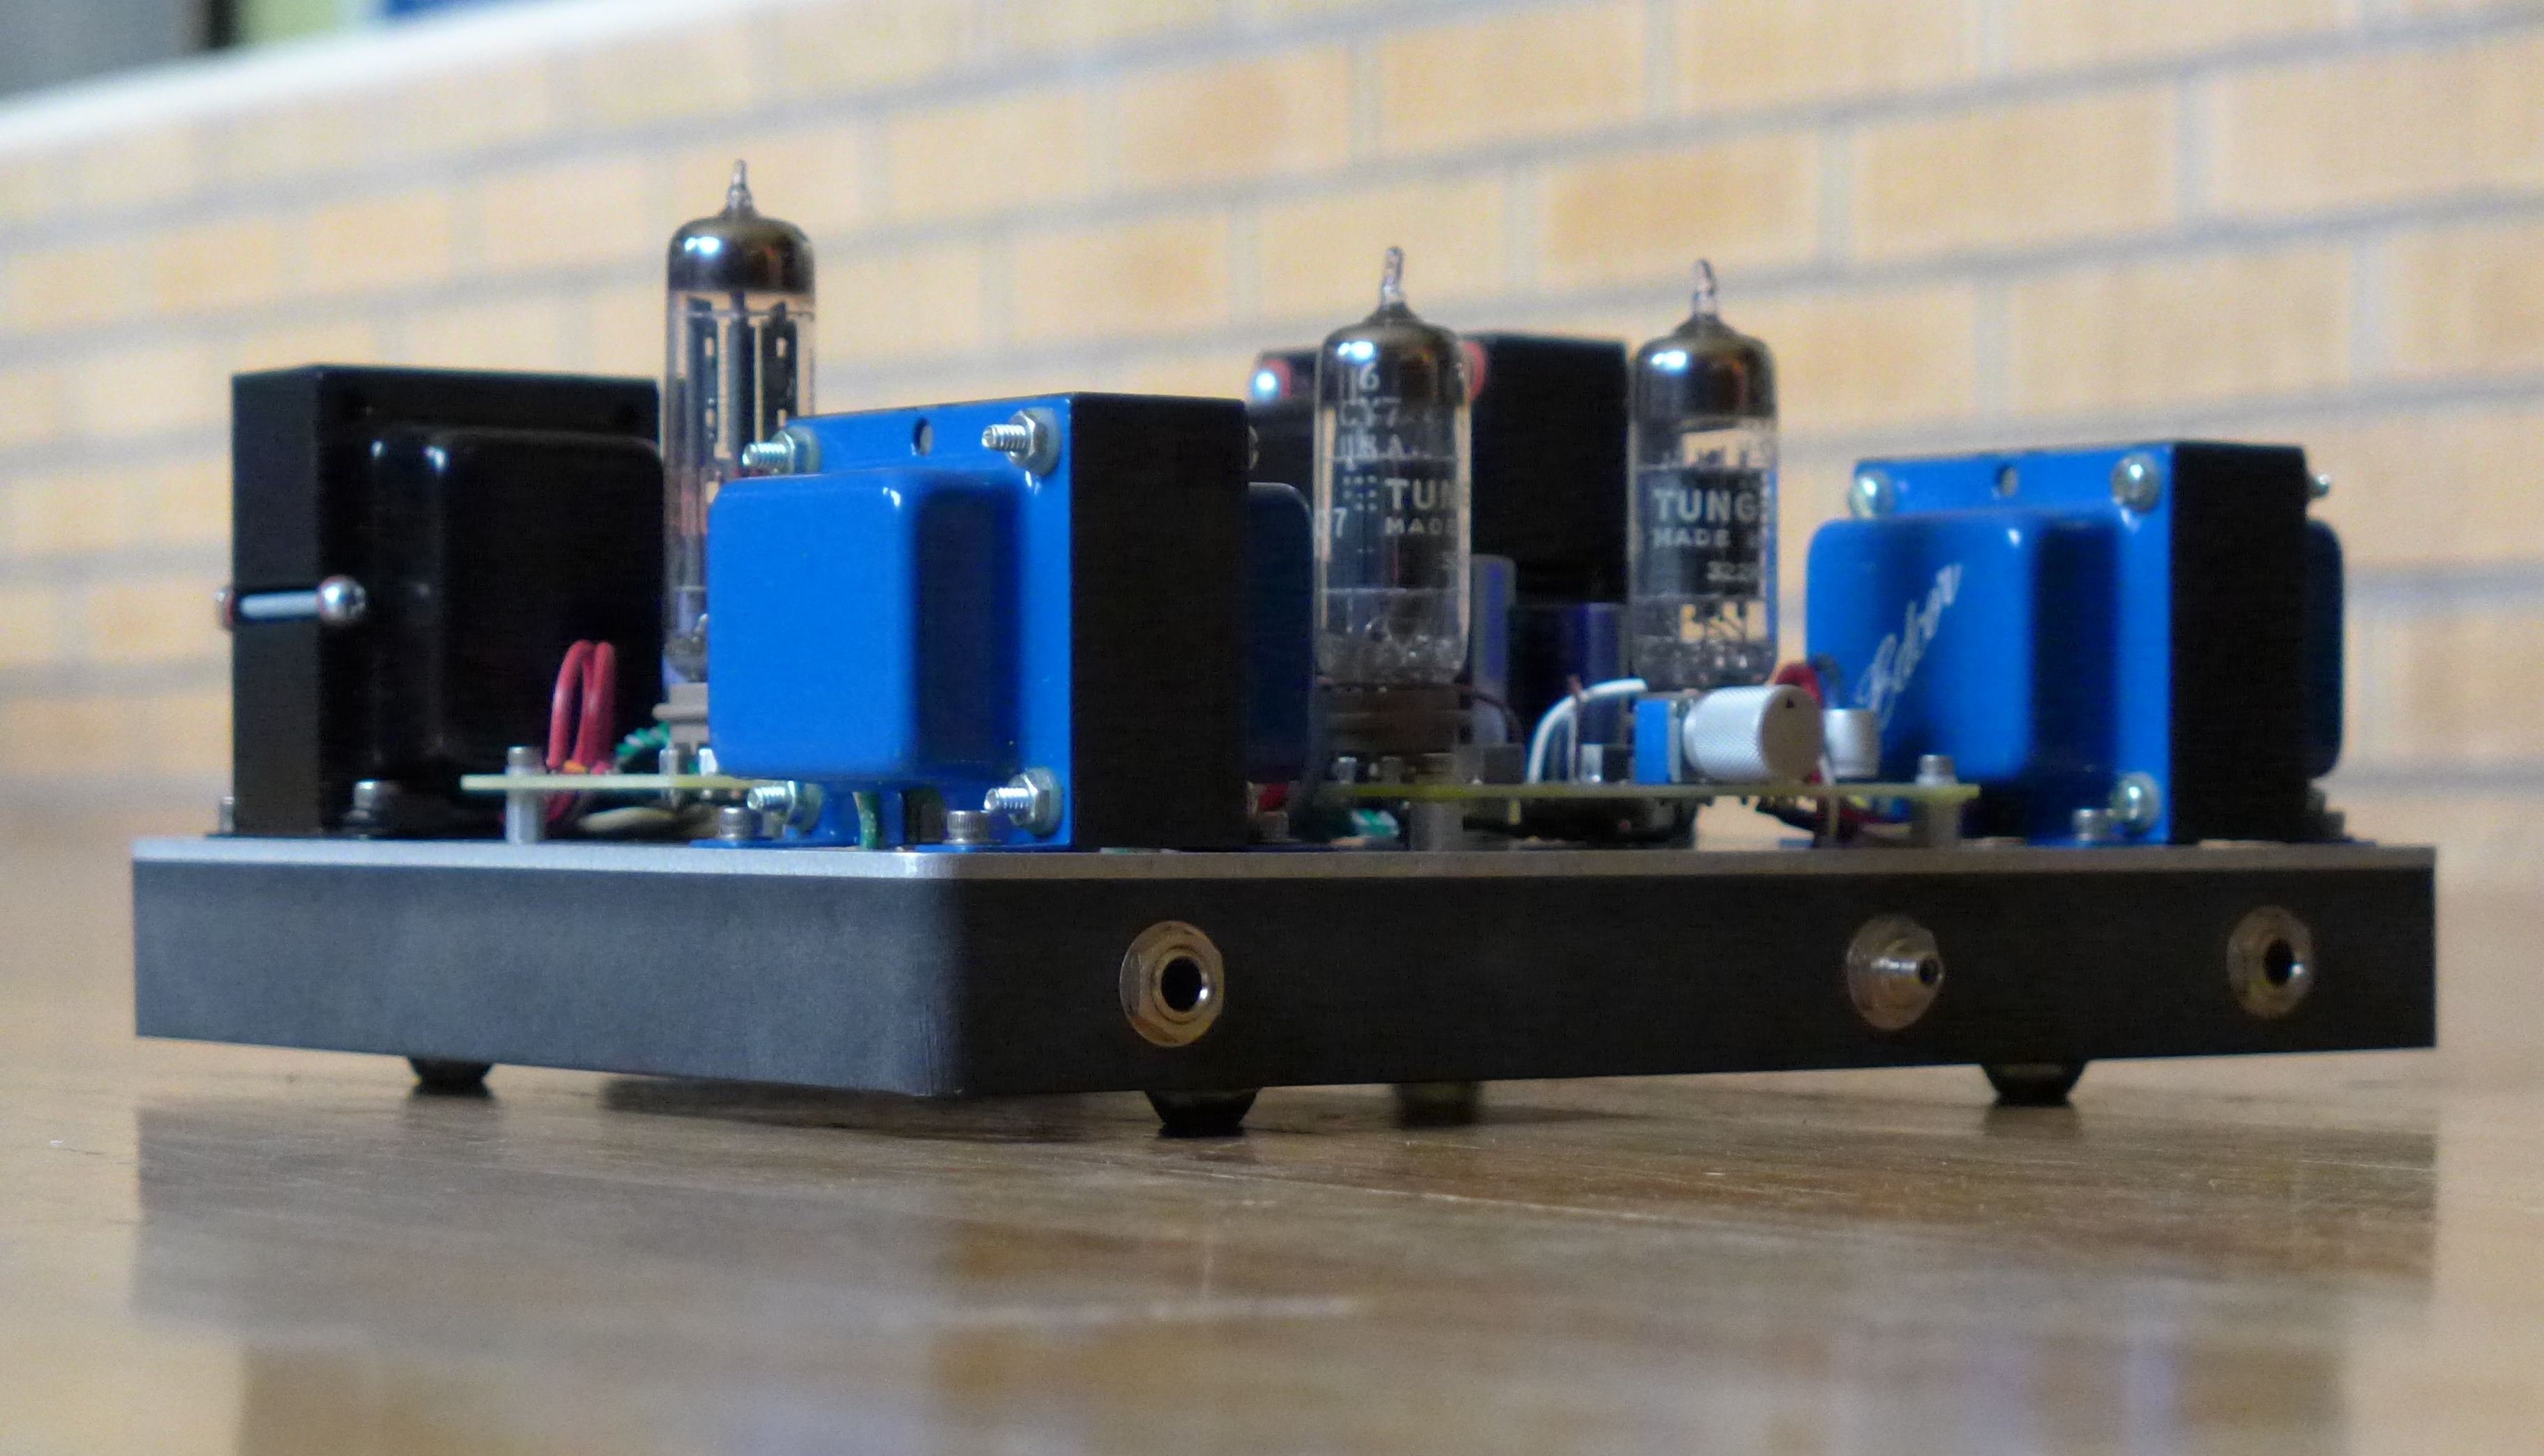 6CY7 dual triode valve amplifier